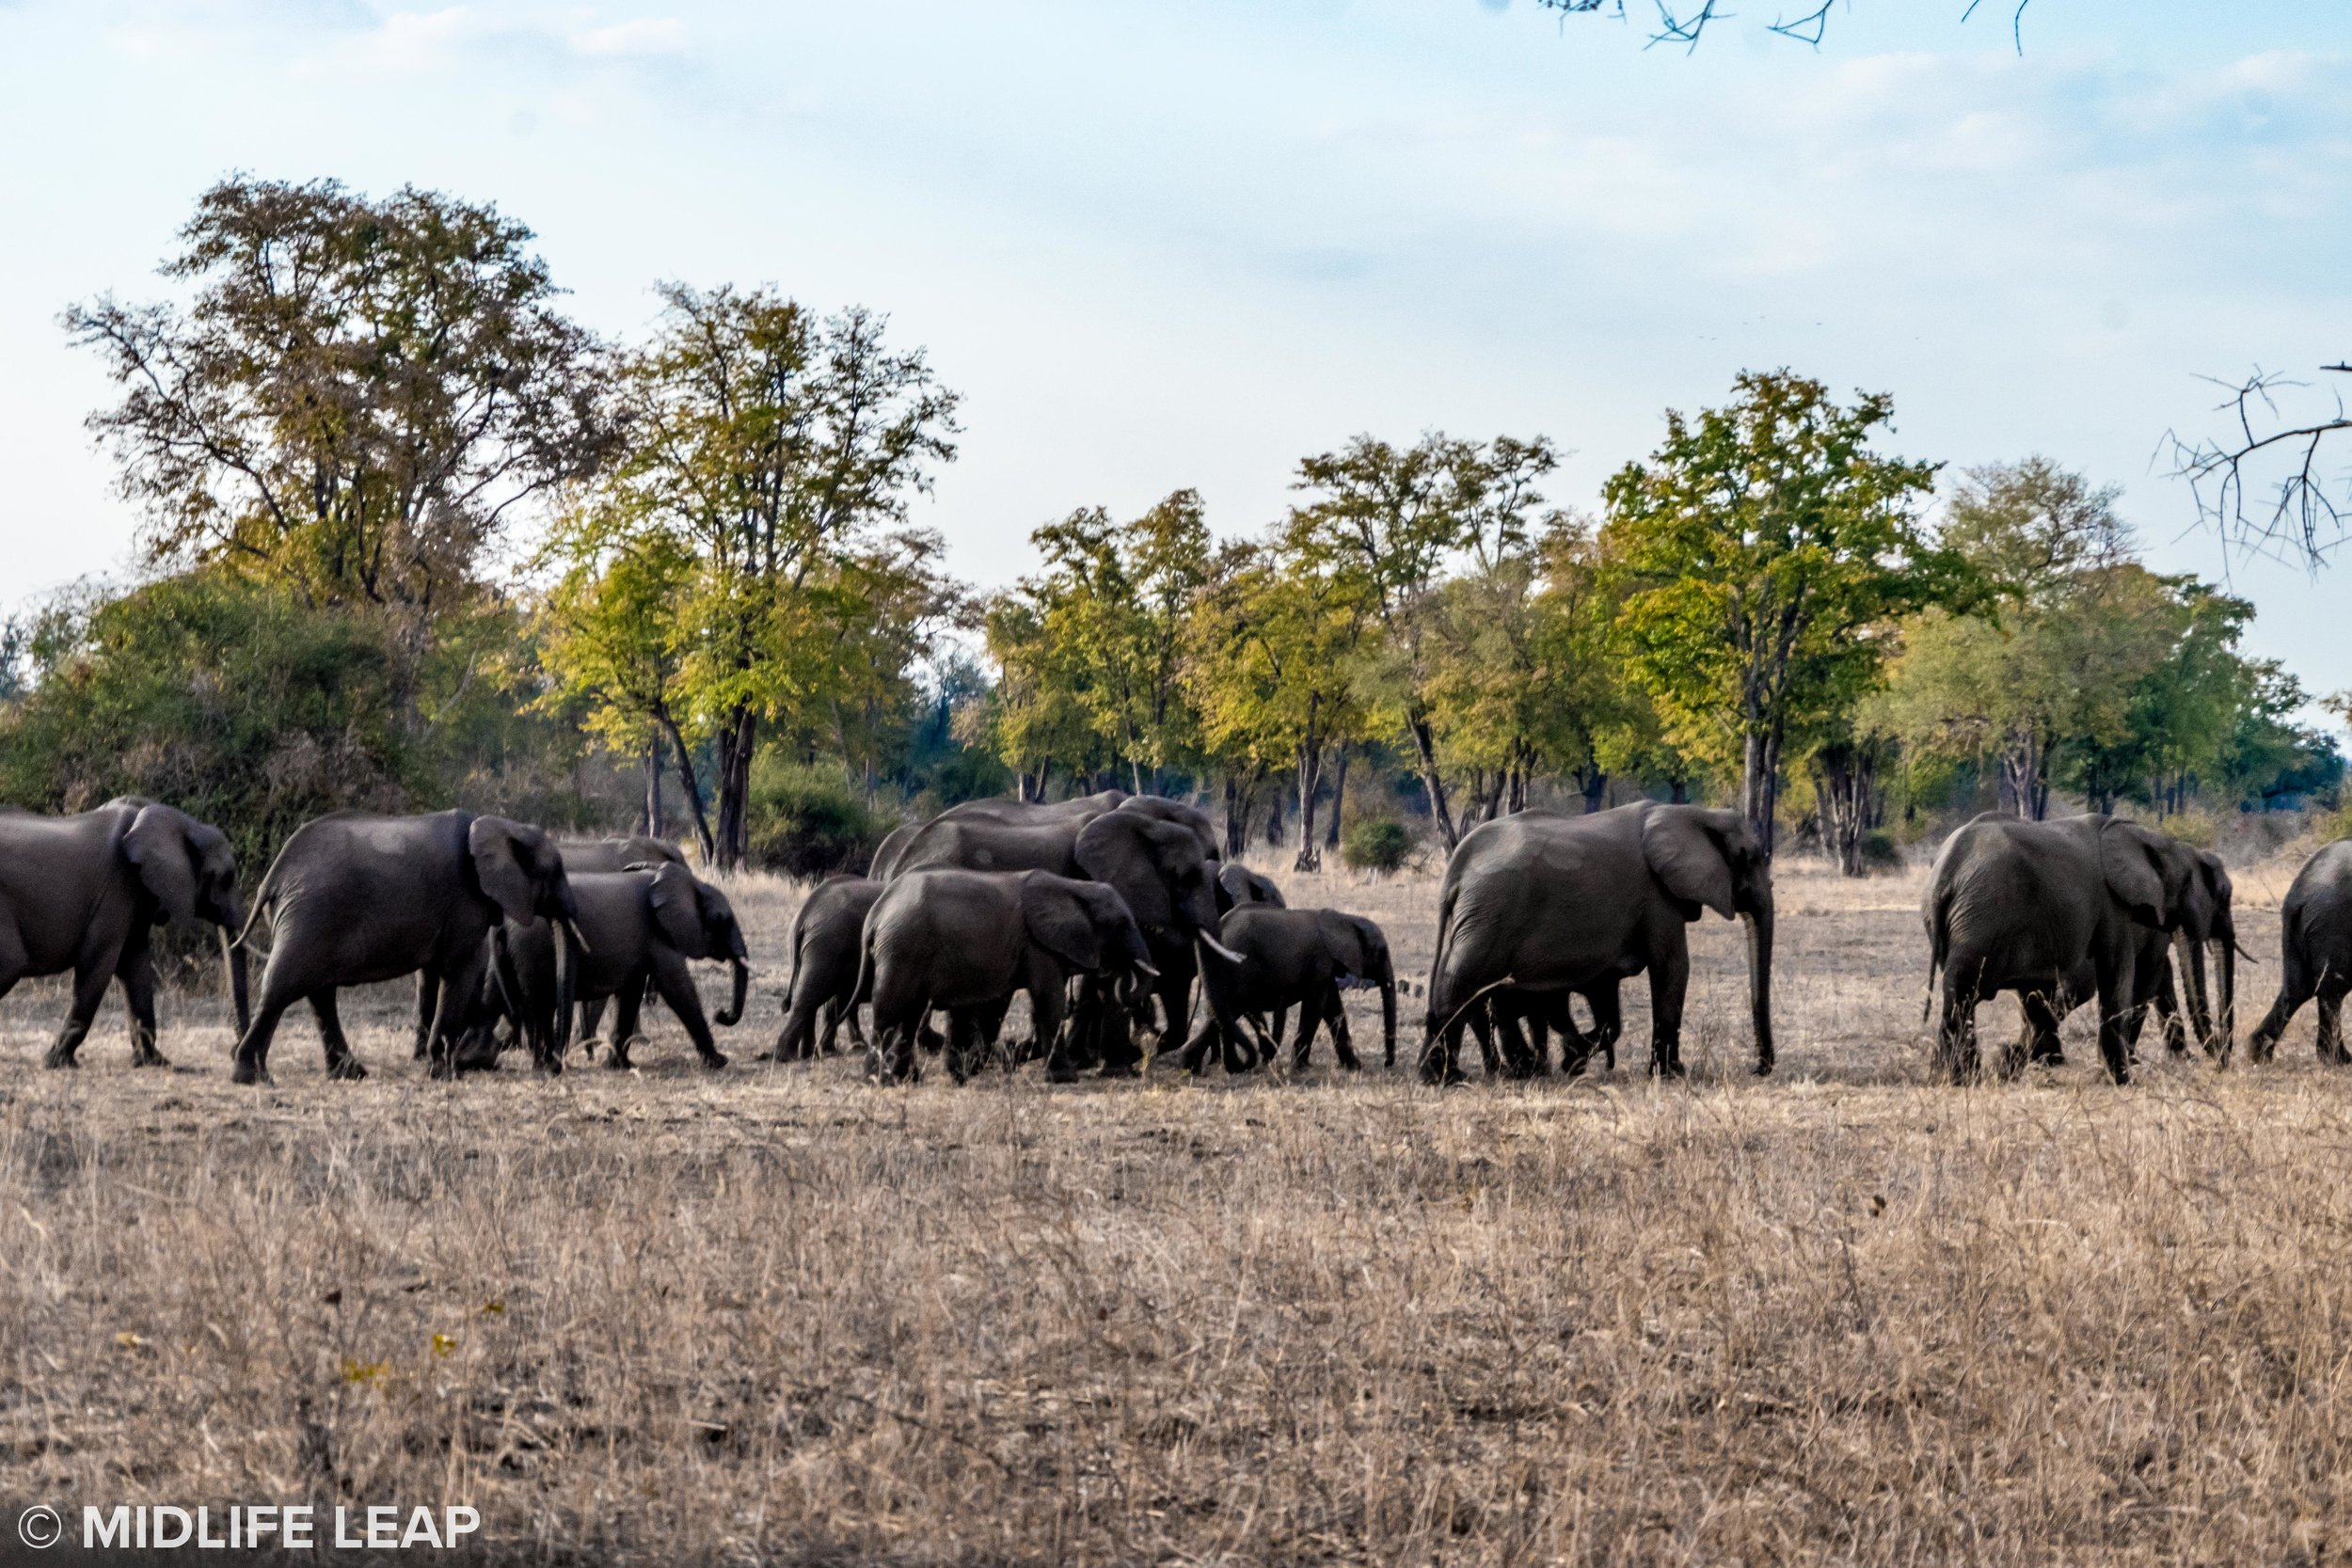 safari-in-zambia-remote-africa-safaris-midlife-leap-tafika-elephants